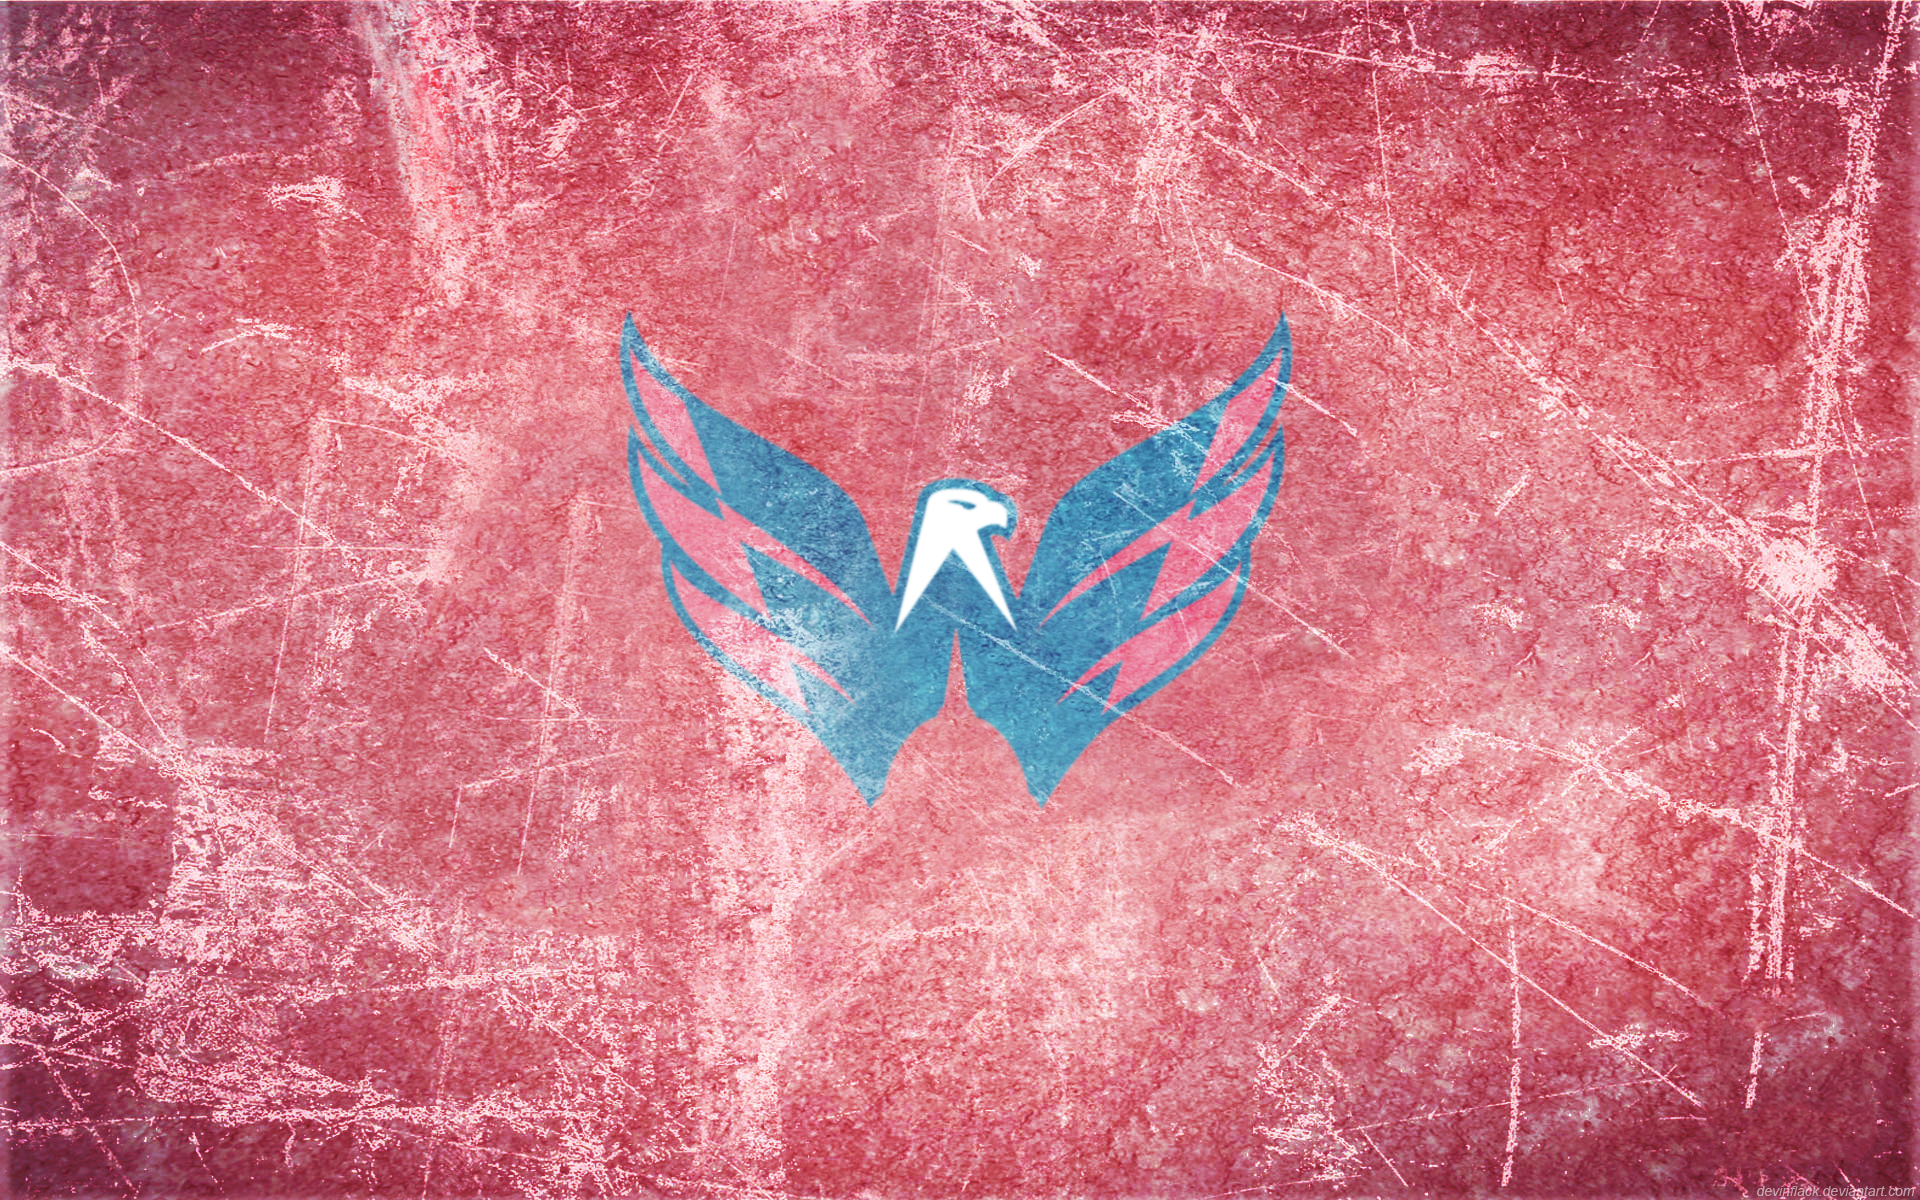 Capitals Ice Wallpaper by DevinFlack 1920 x 1200 1920x1200